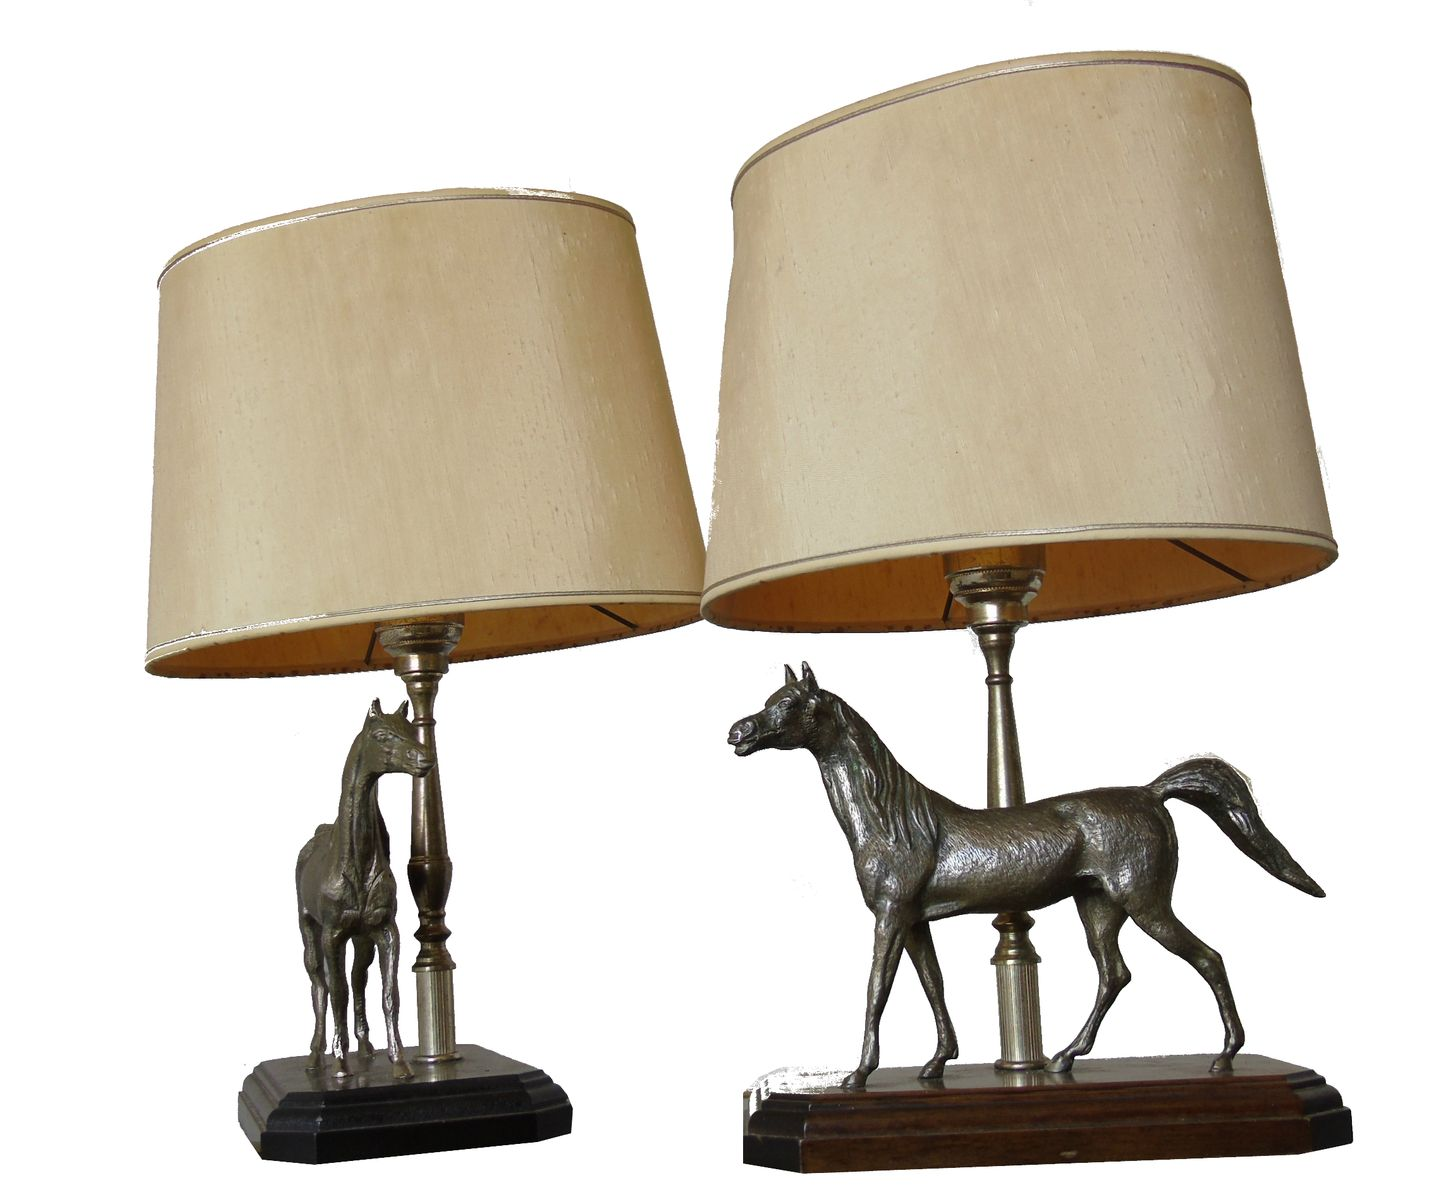 Vintage french sculptural horse table lamps 1970s set of 2 for vintage french sculptural horse table lamps 1970s set of 2 aloadofball Image collections